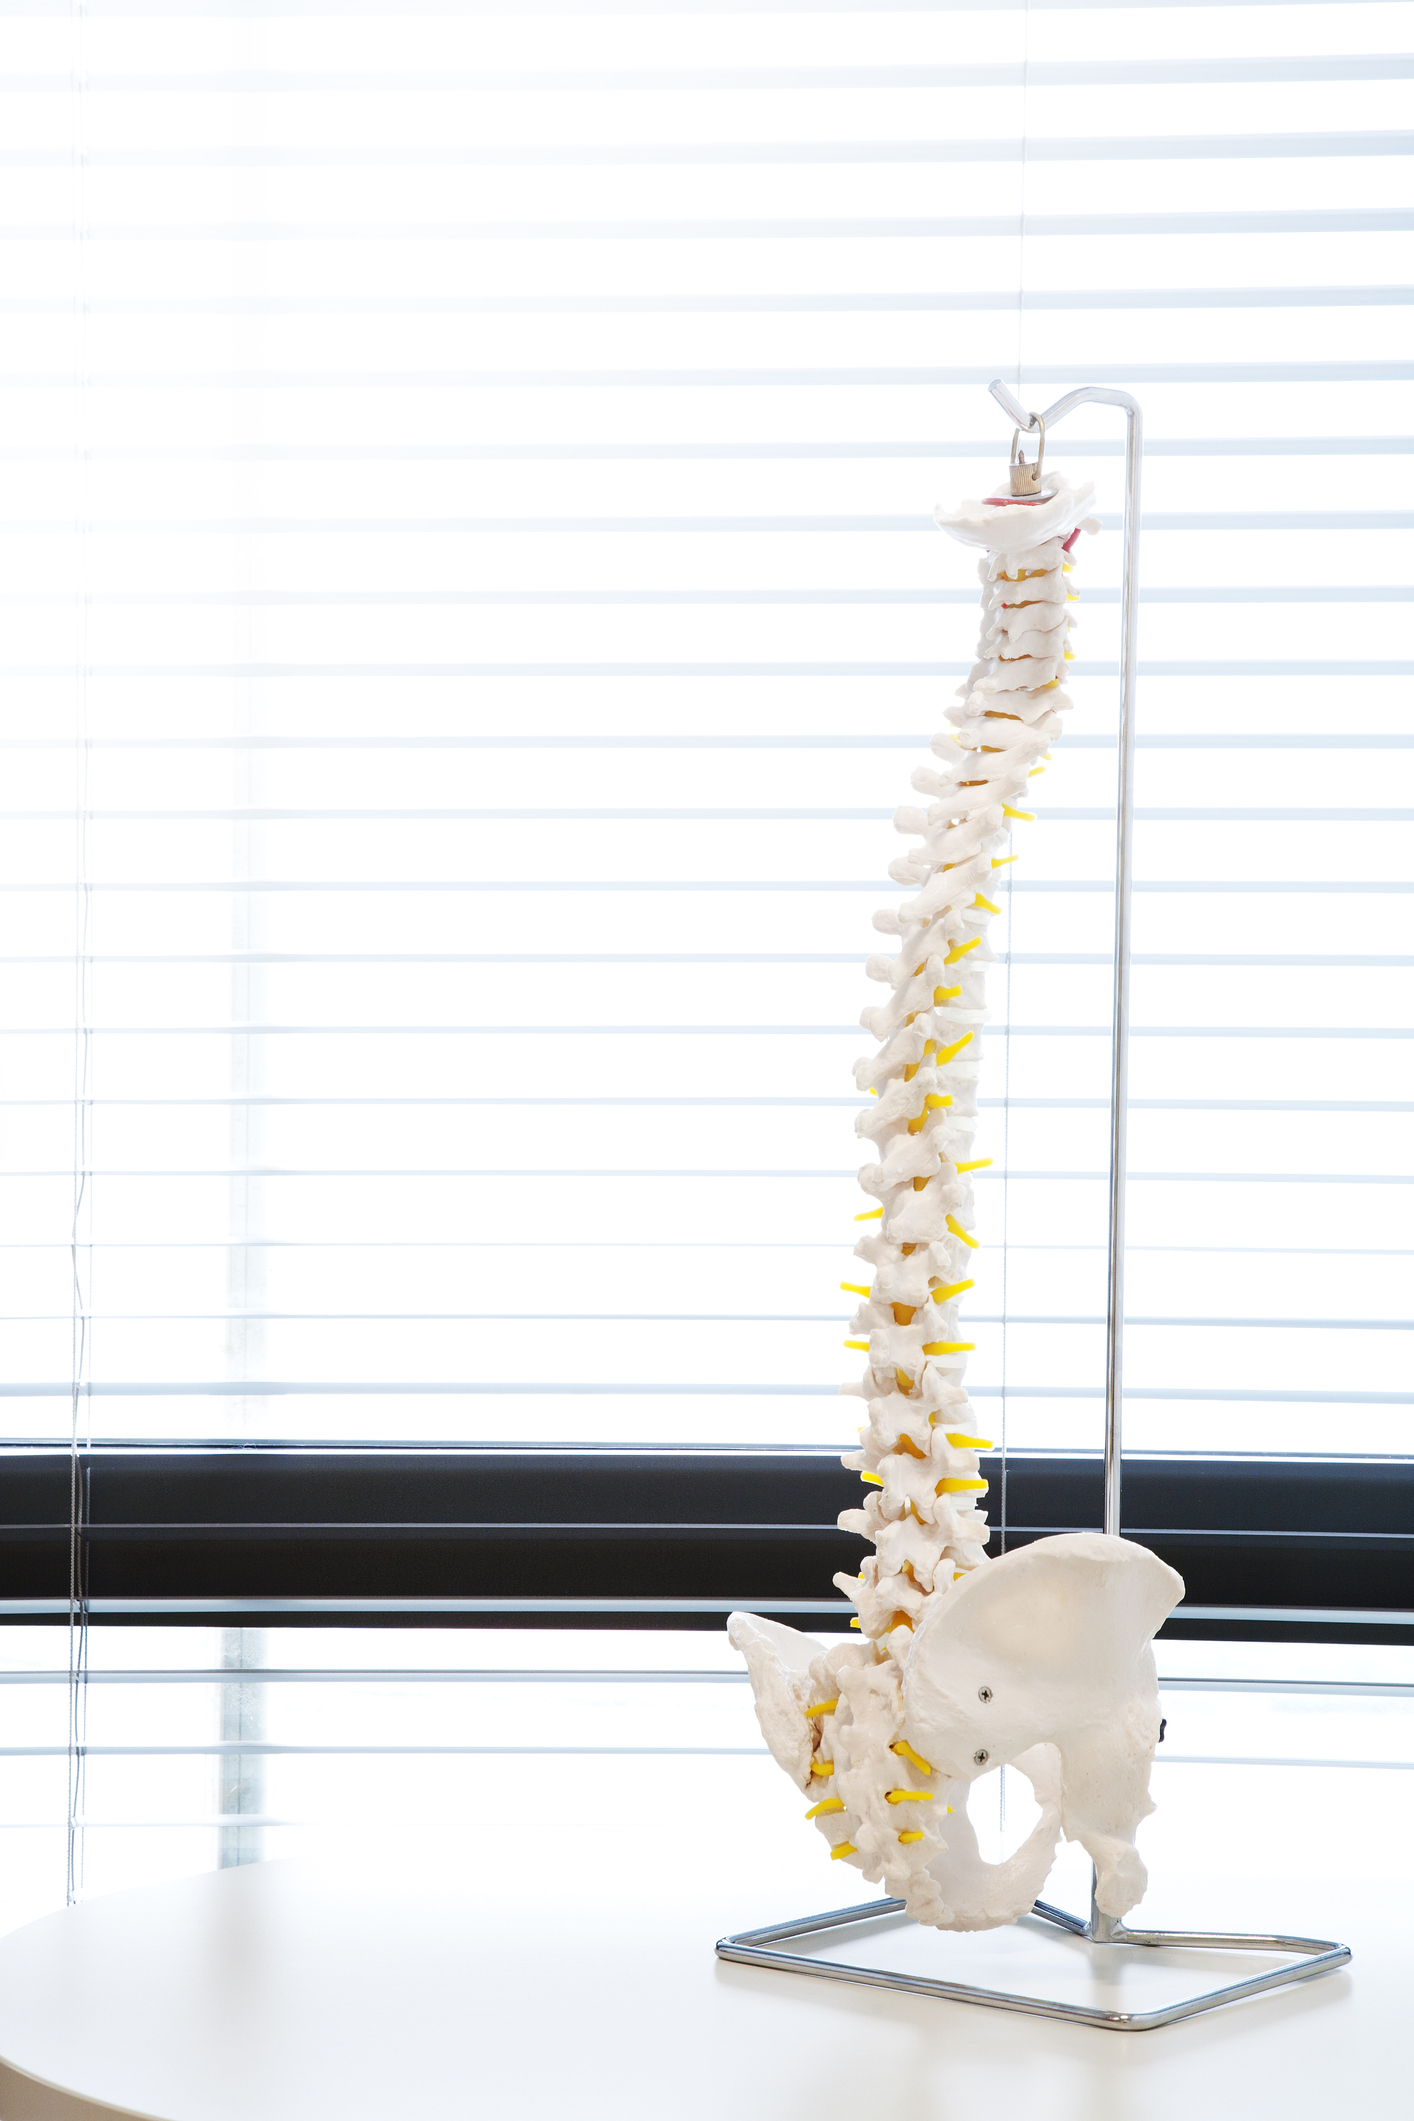 SPINE model shown to Lewisville TX patient